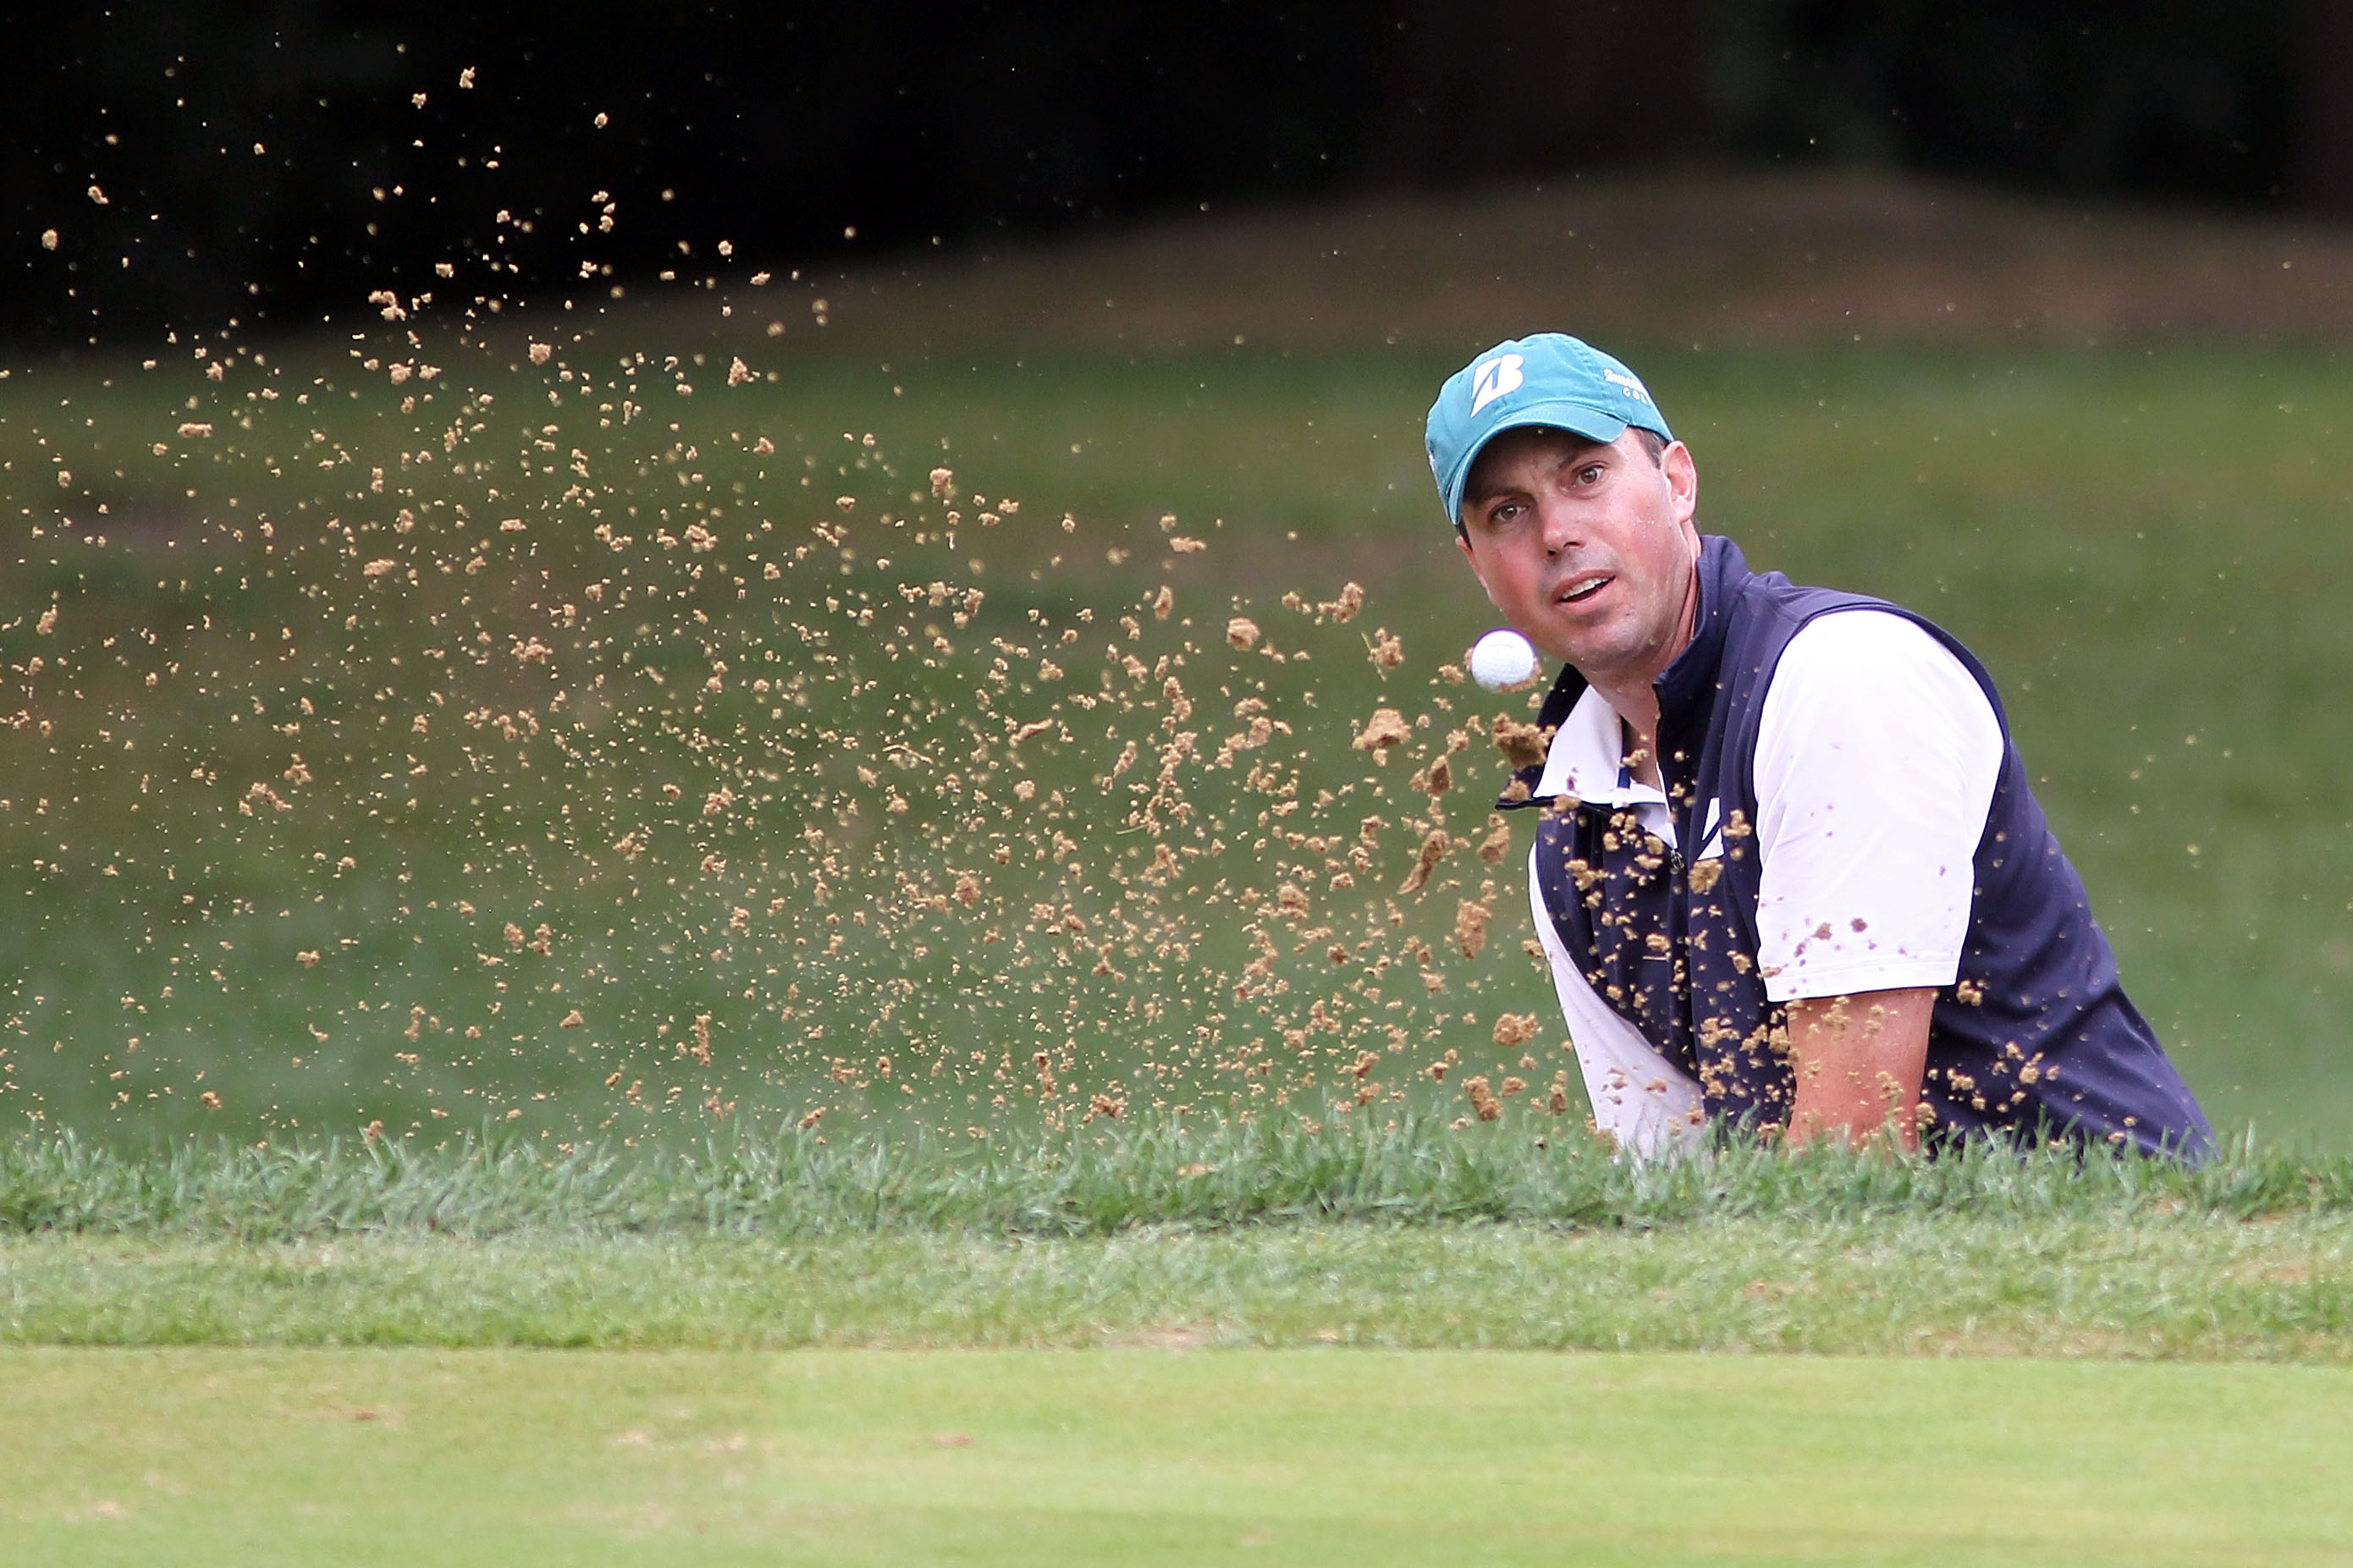 LEMONT, IL - SEPTEMBER 11:  Matt Kuchar hits a shot out of the bunker on the 15th hole during the third round of the BMW Championship at Cog Hill Golf & Country Club on September 11, 2010 in Lemont, Illinois.  (Photo by Jamie Squire/Getty Images)